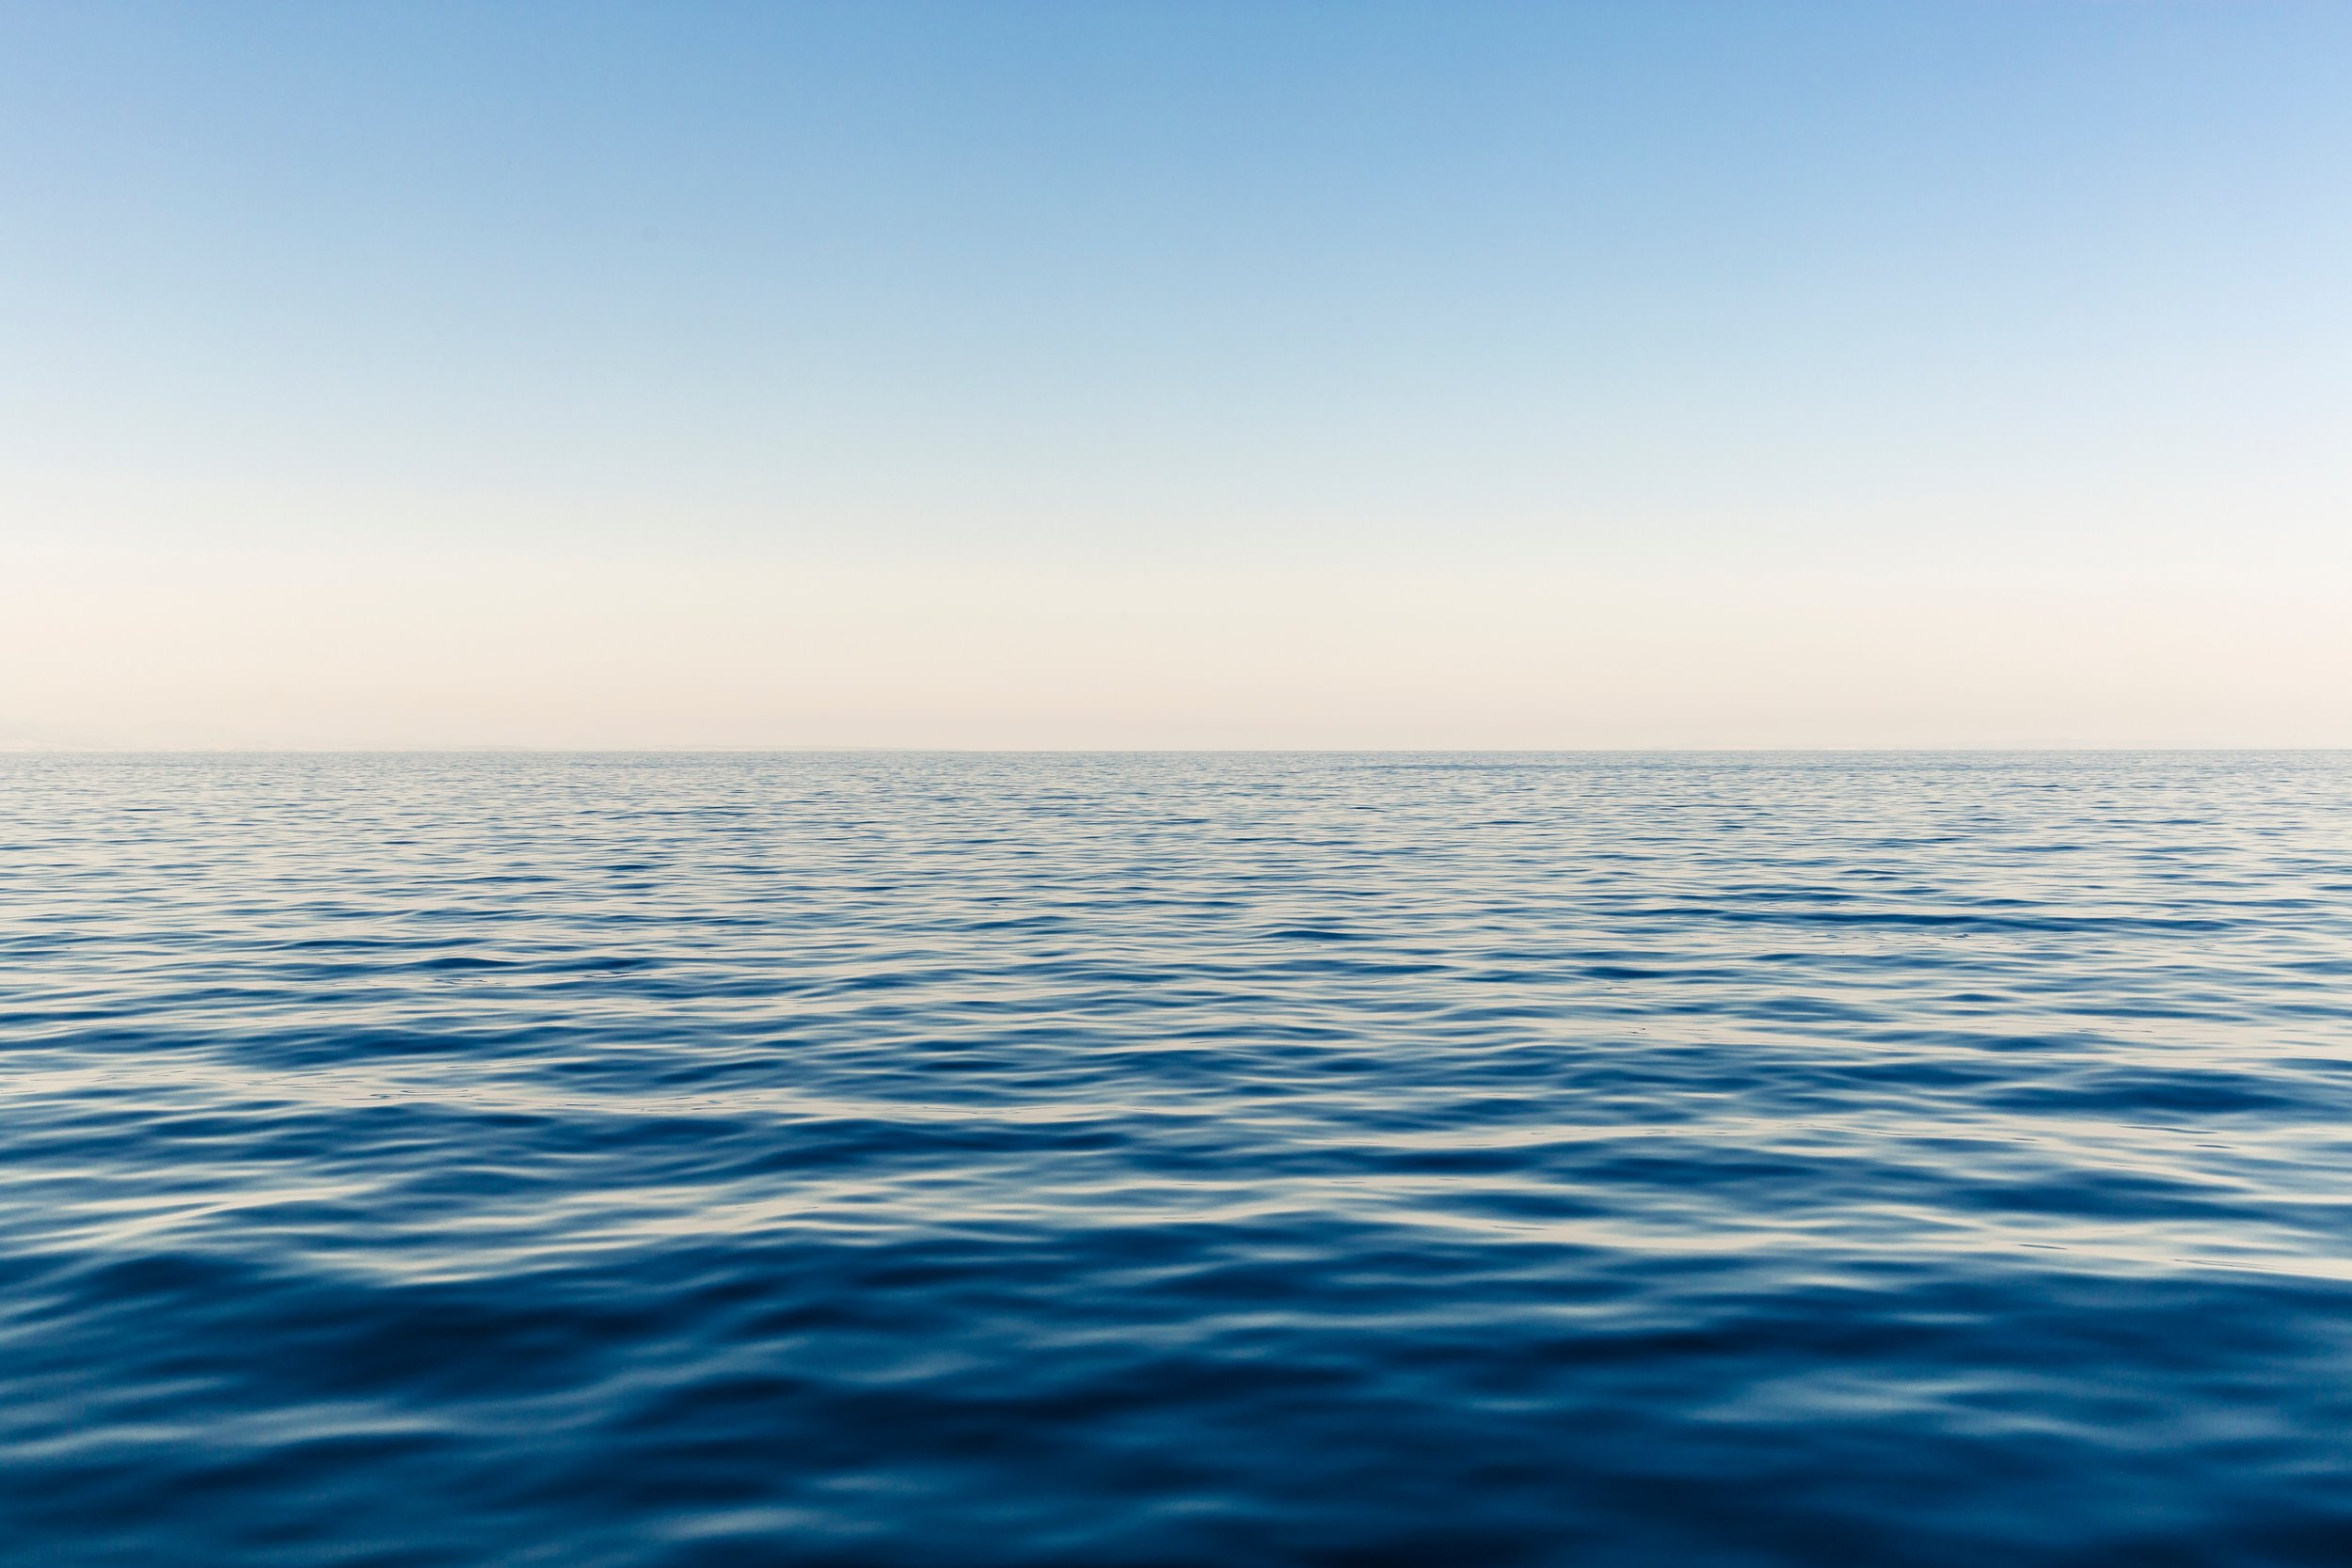 OUR MISSION - Our mission is to accelerate coordinated ocean initiative globally, in a holistic effort to regenerate the ocean.